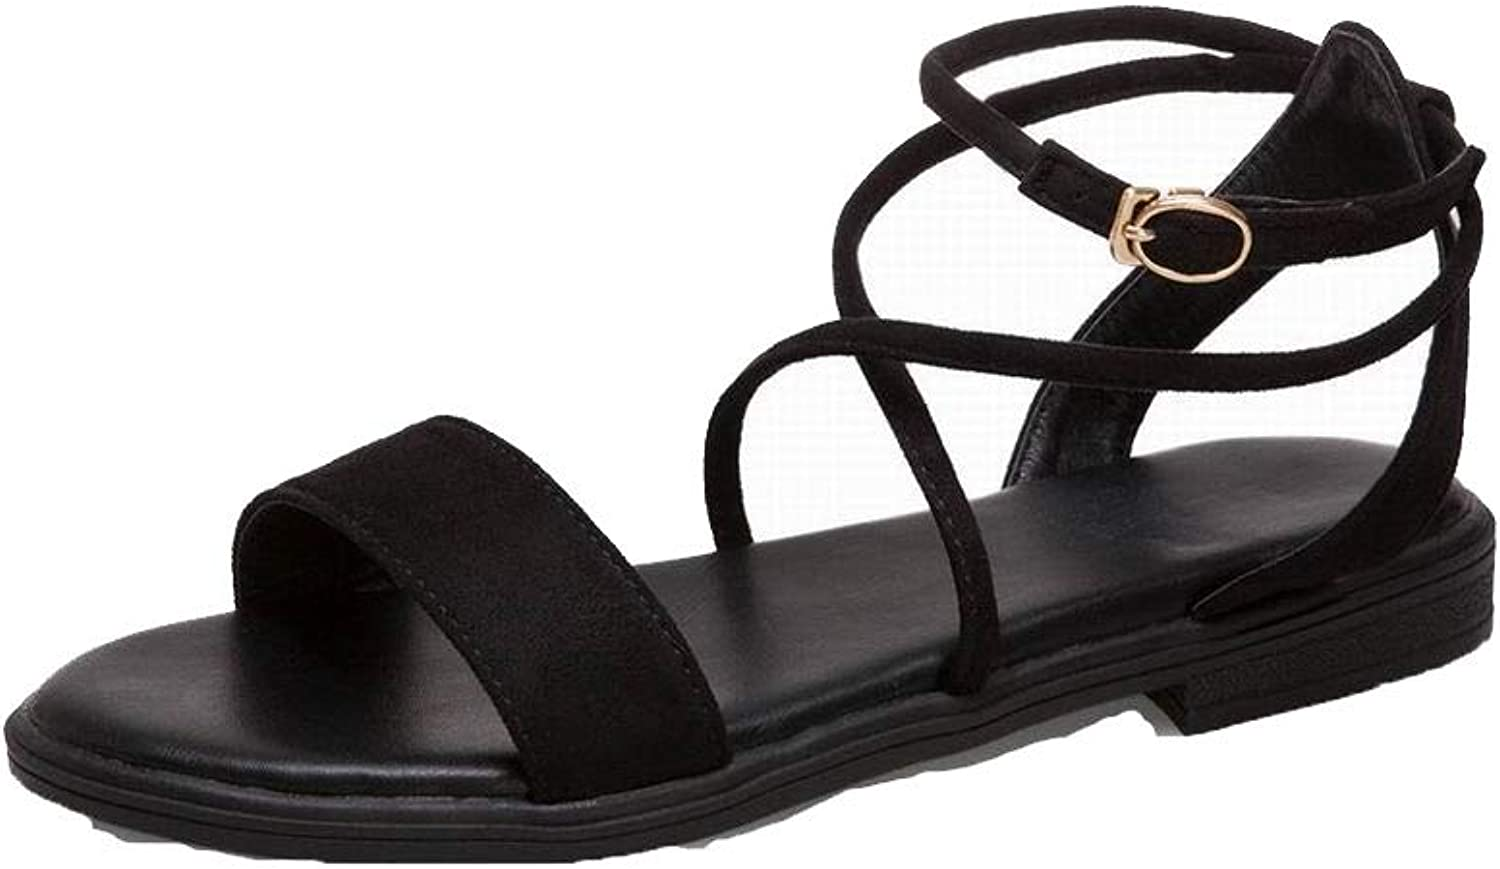 AllhqFashion Women's Low-Heels Frosted Solid Buckle Open-Toe Sandals, FBULD015385